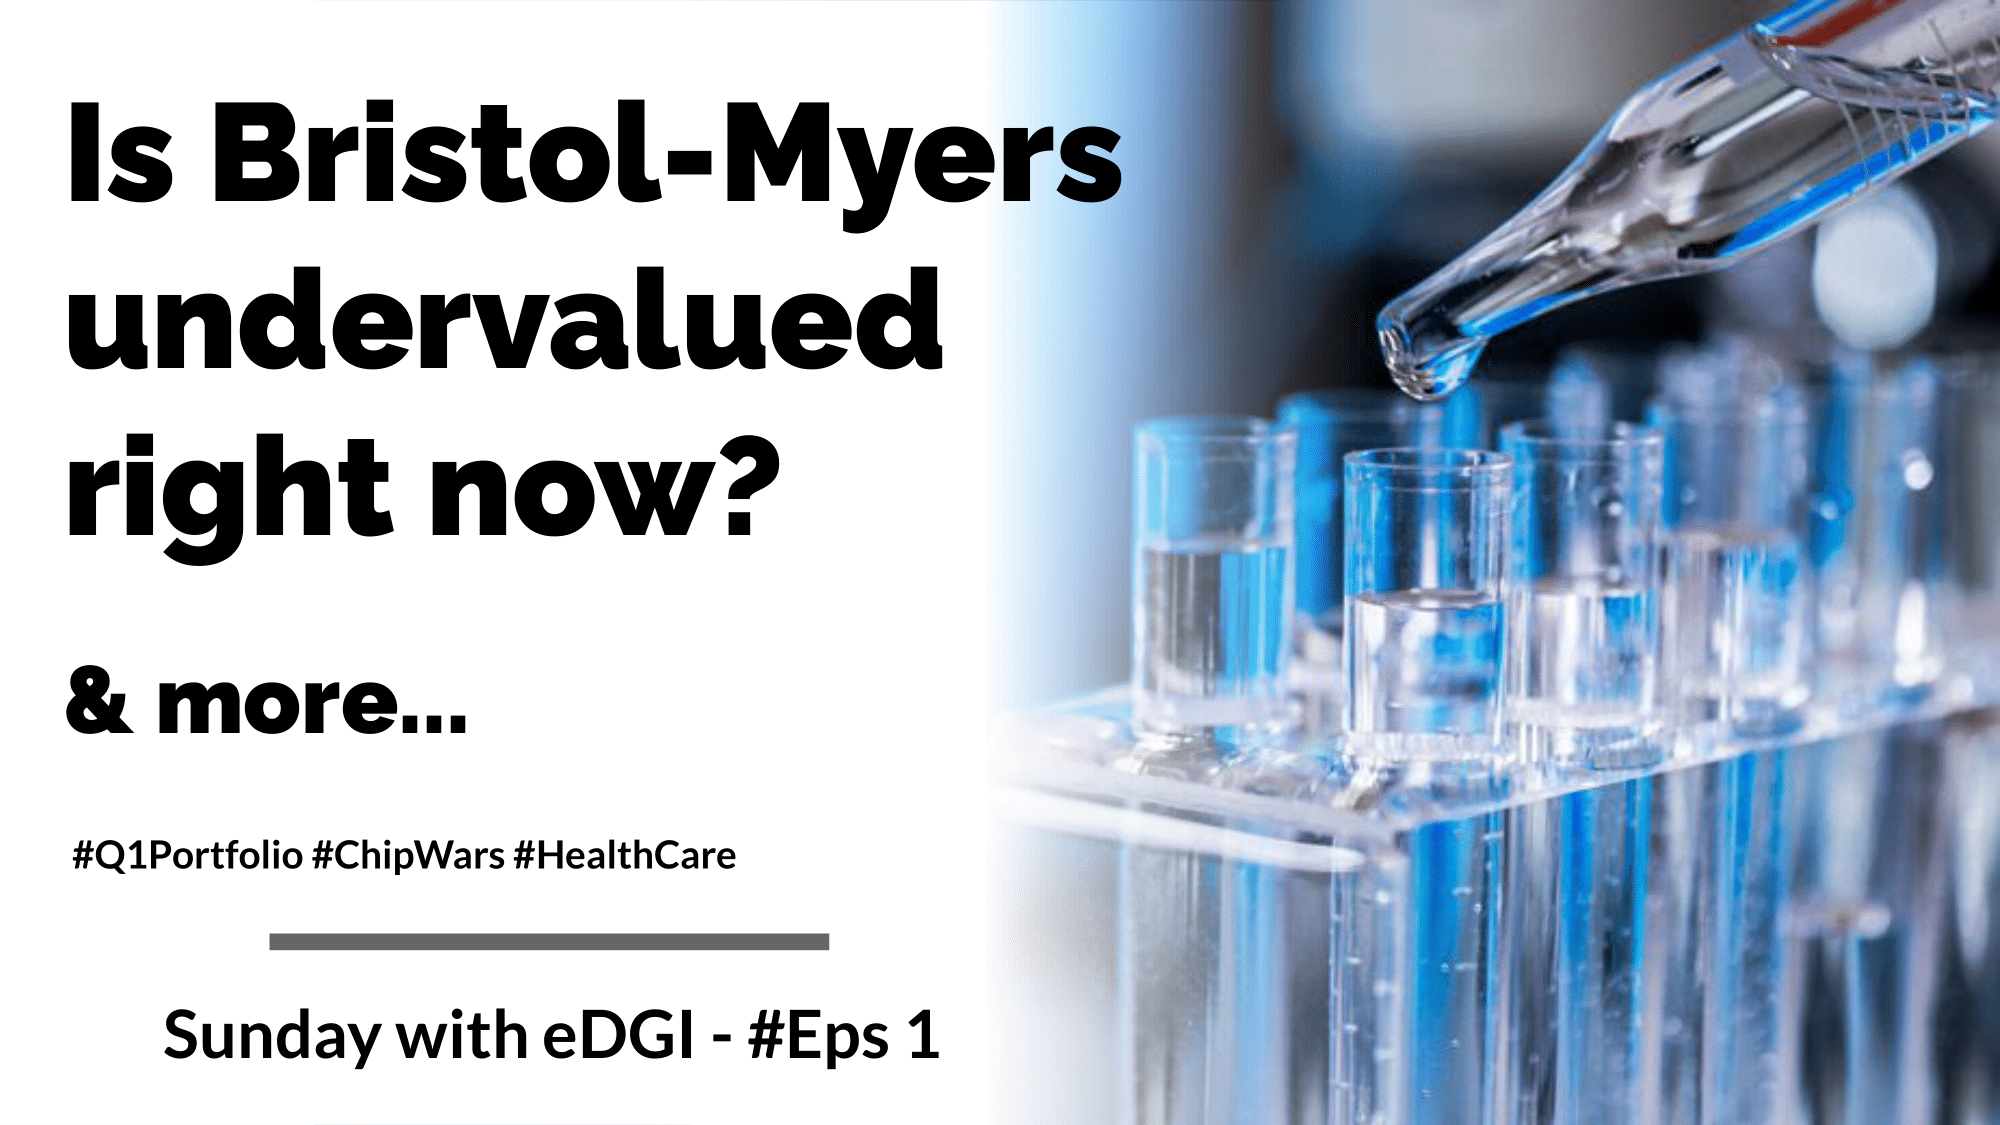 Is Bristol Myers undervalued right now?